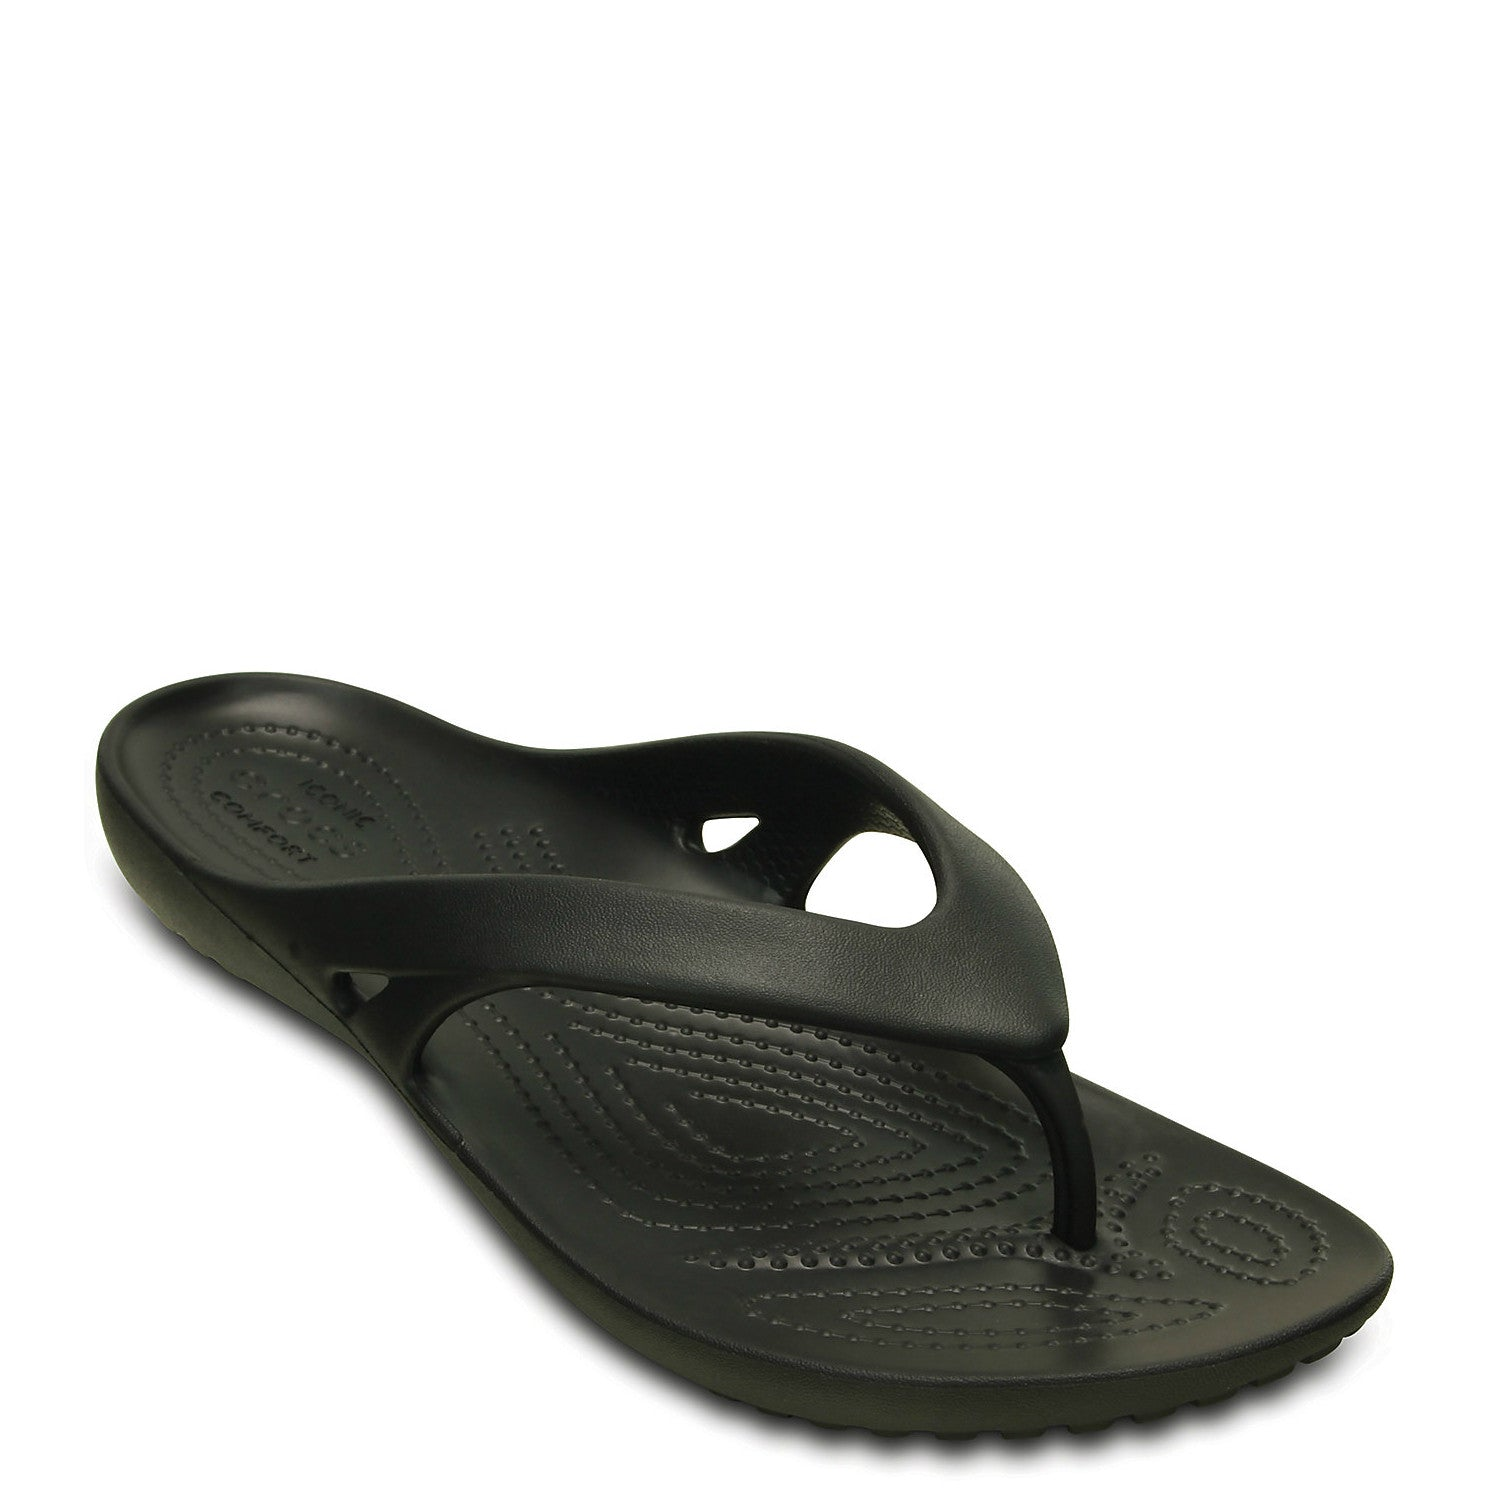 a00e925272cd87 Crocs Women s Kadee II Flip Flop - Black 202492 - ShoeShackOnline